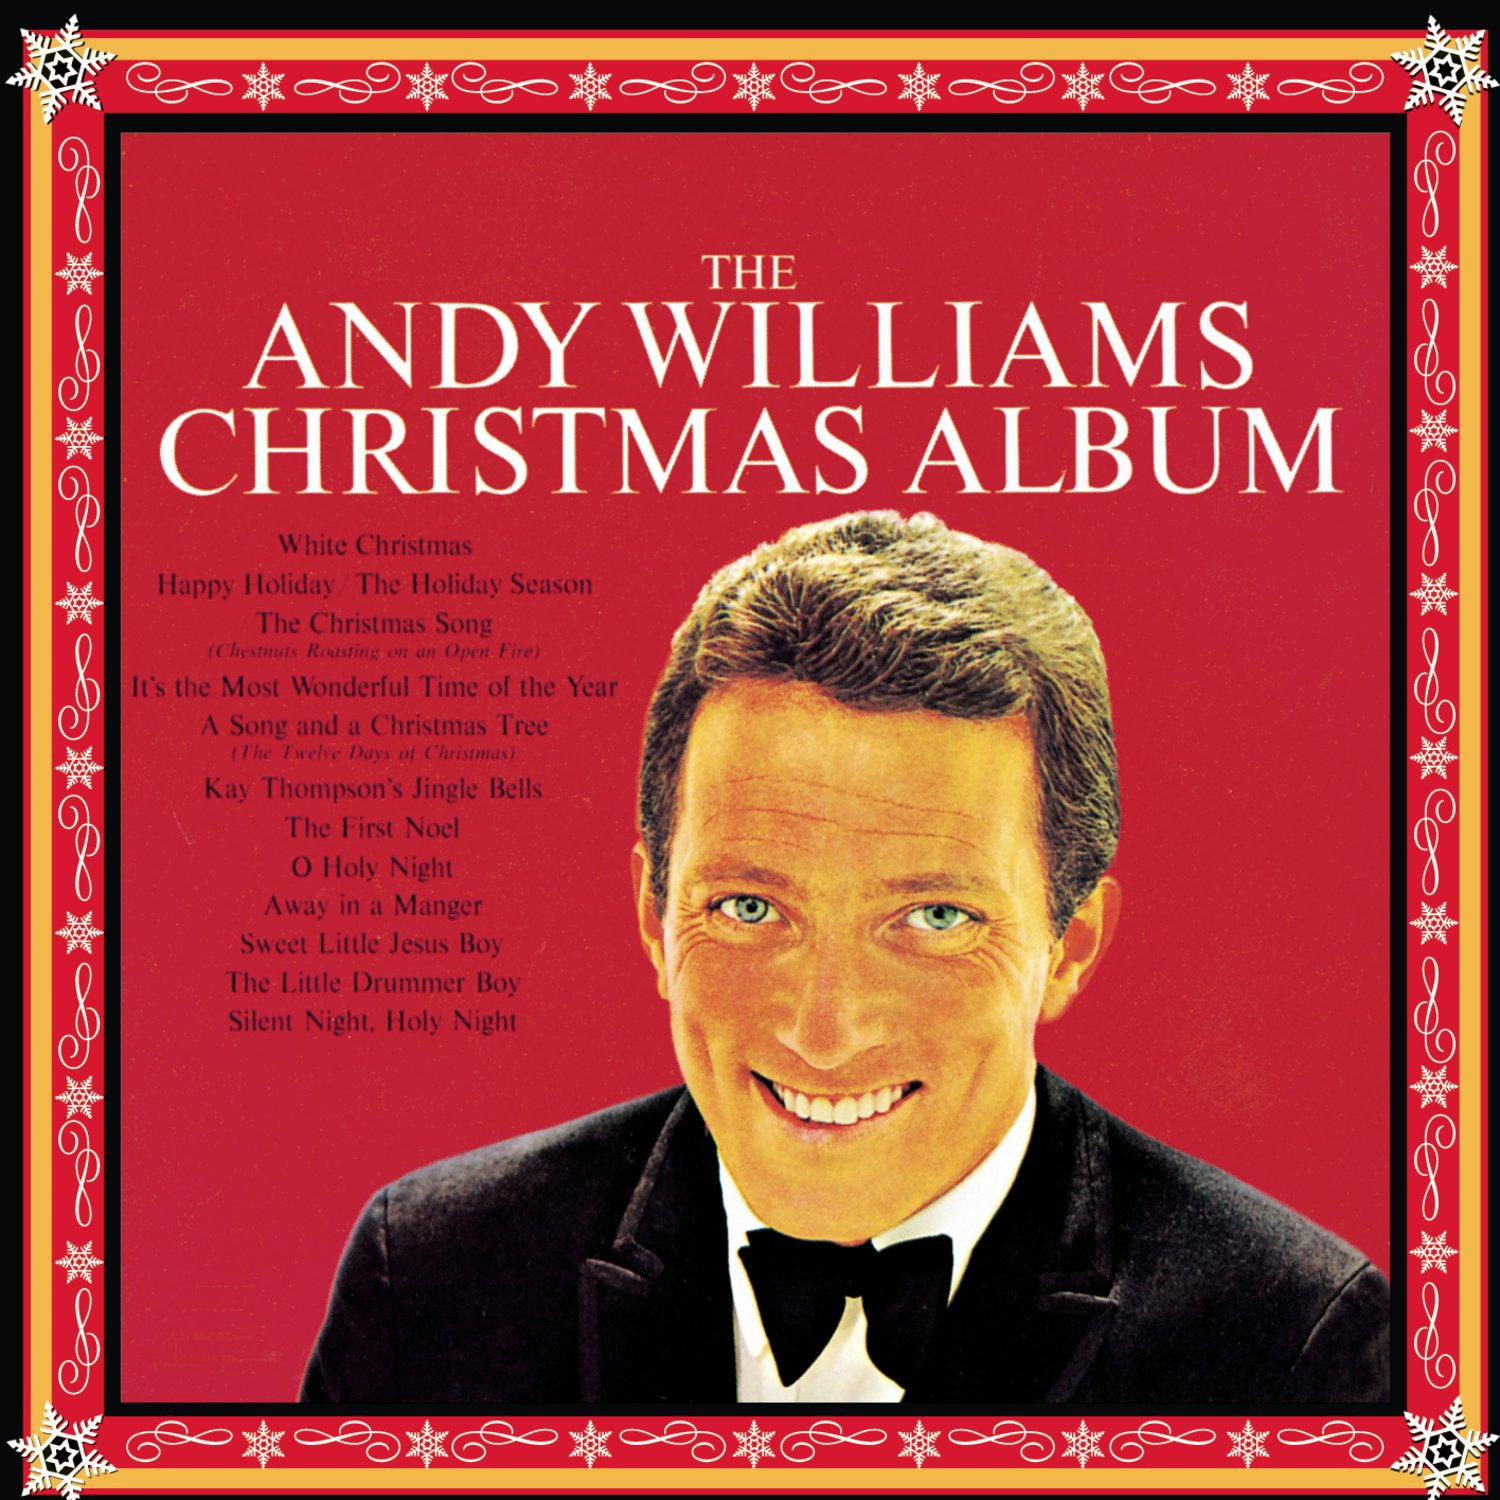 andy williams the andy williams christmas album amazoncom music - Who Wrote The Song White Christmas